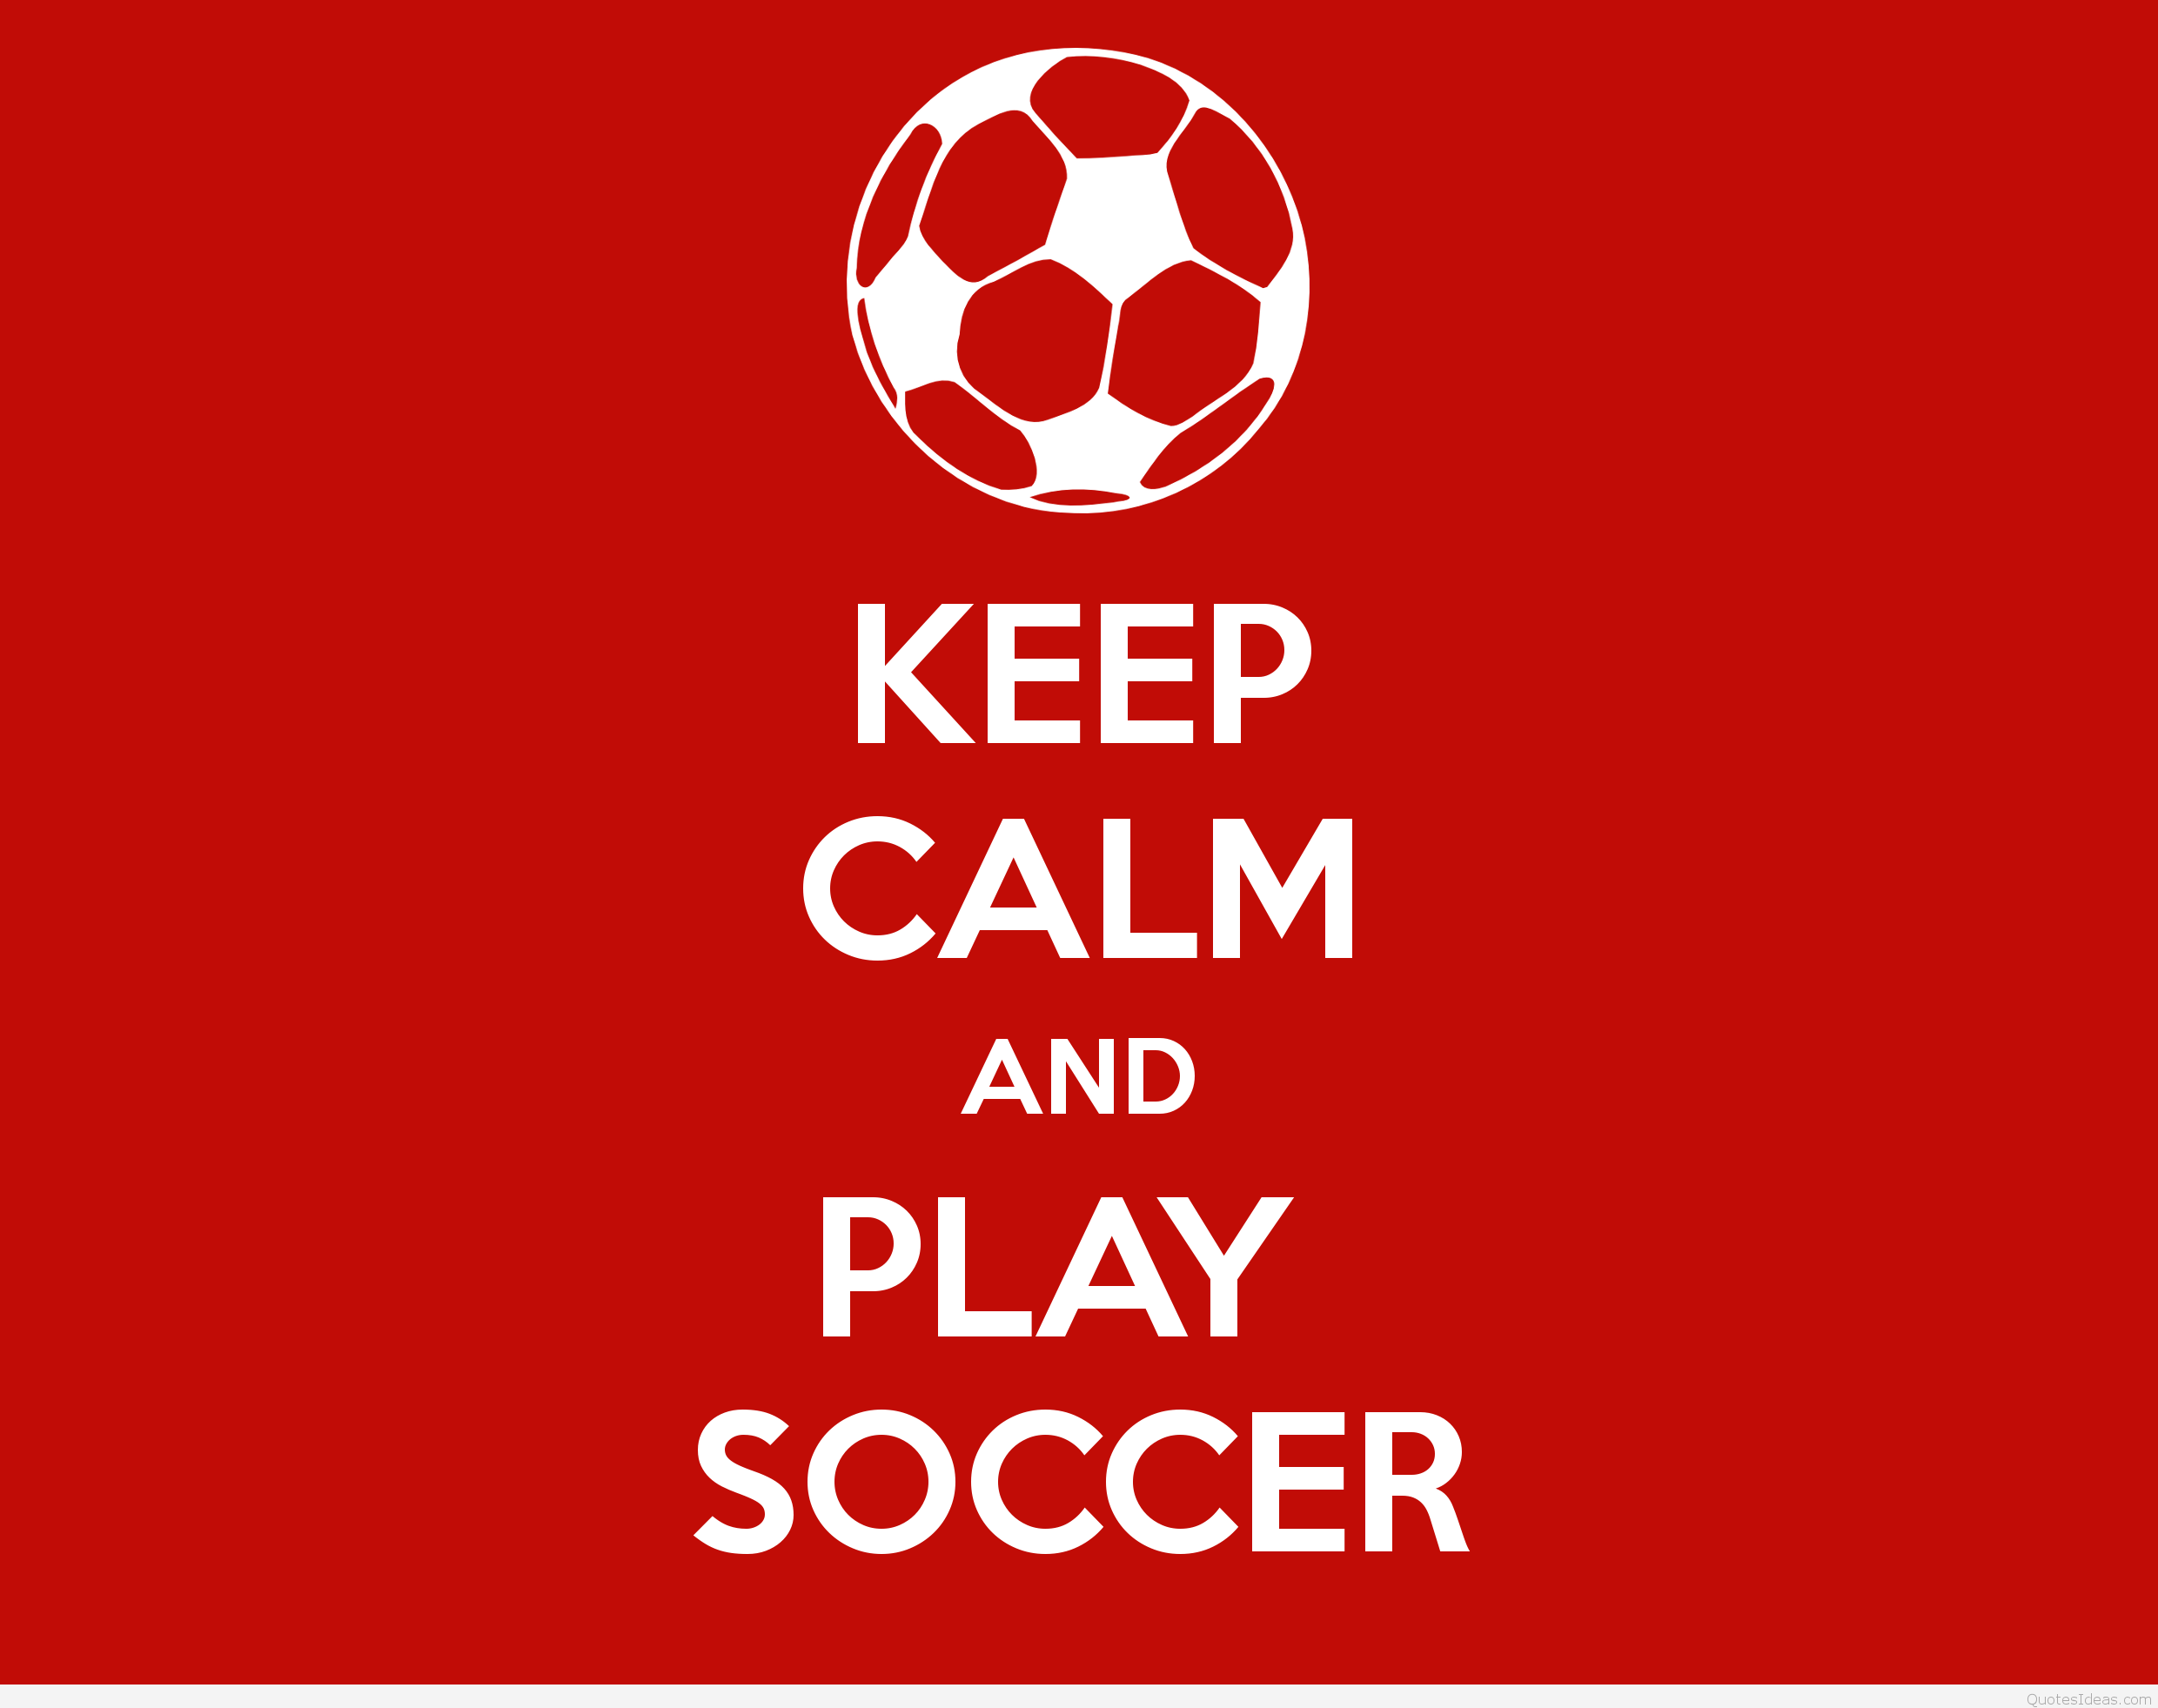 Soccer Quotes Wallpapers - Wallpaper Cave